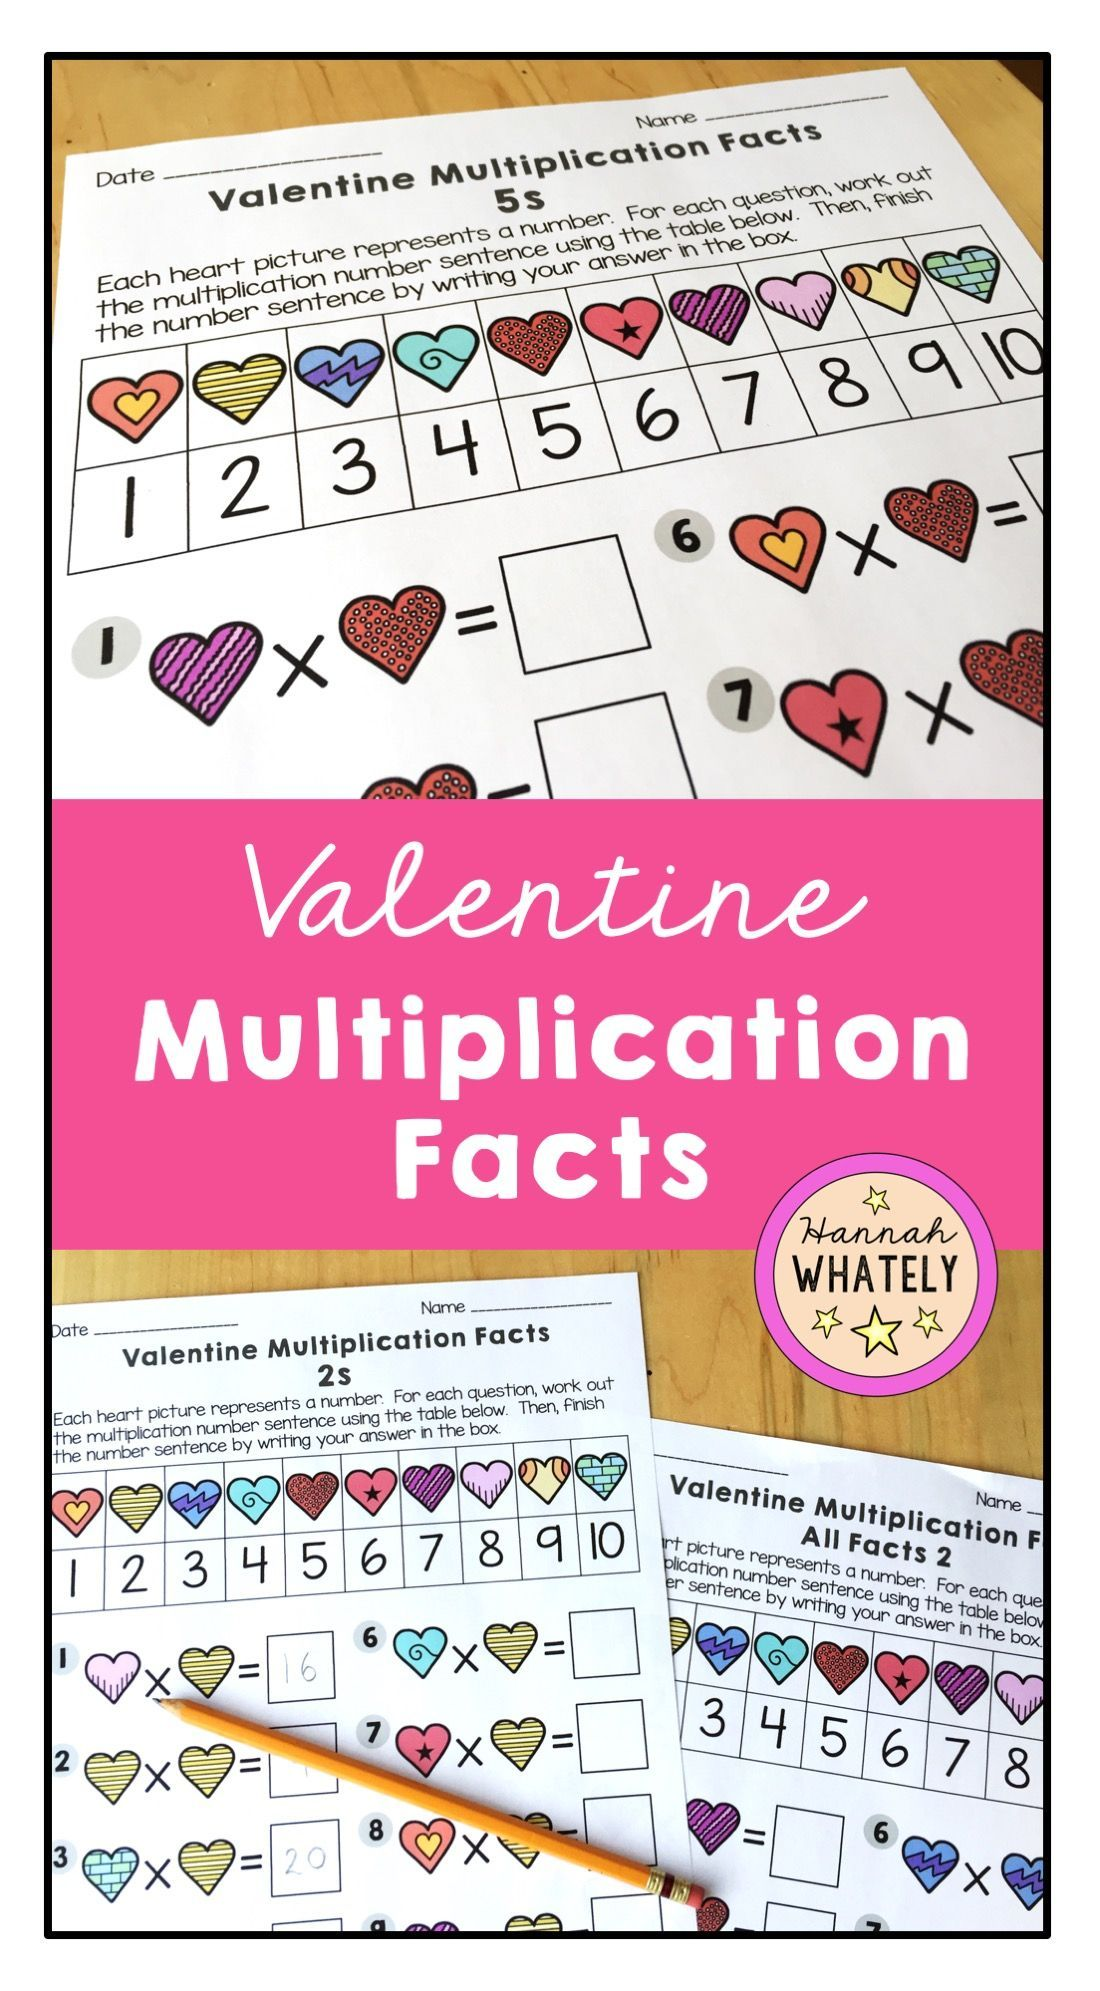 Valentine Multiplication Facts